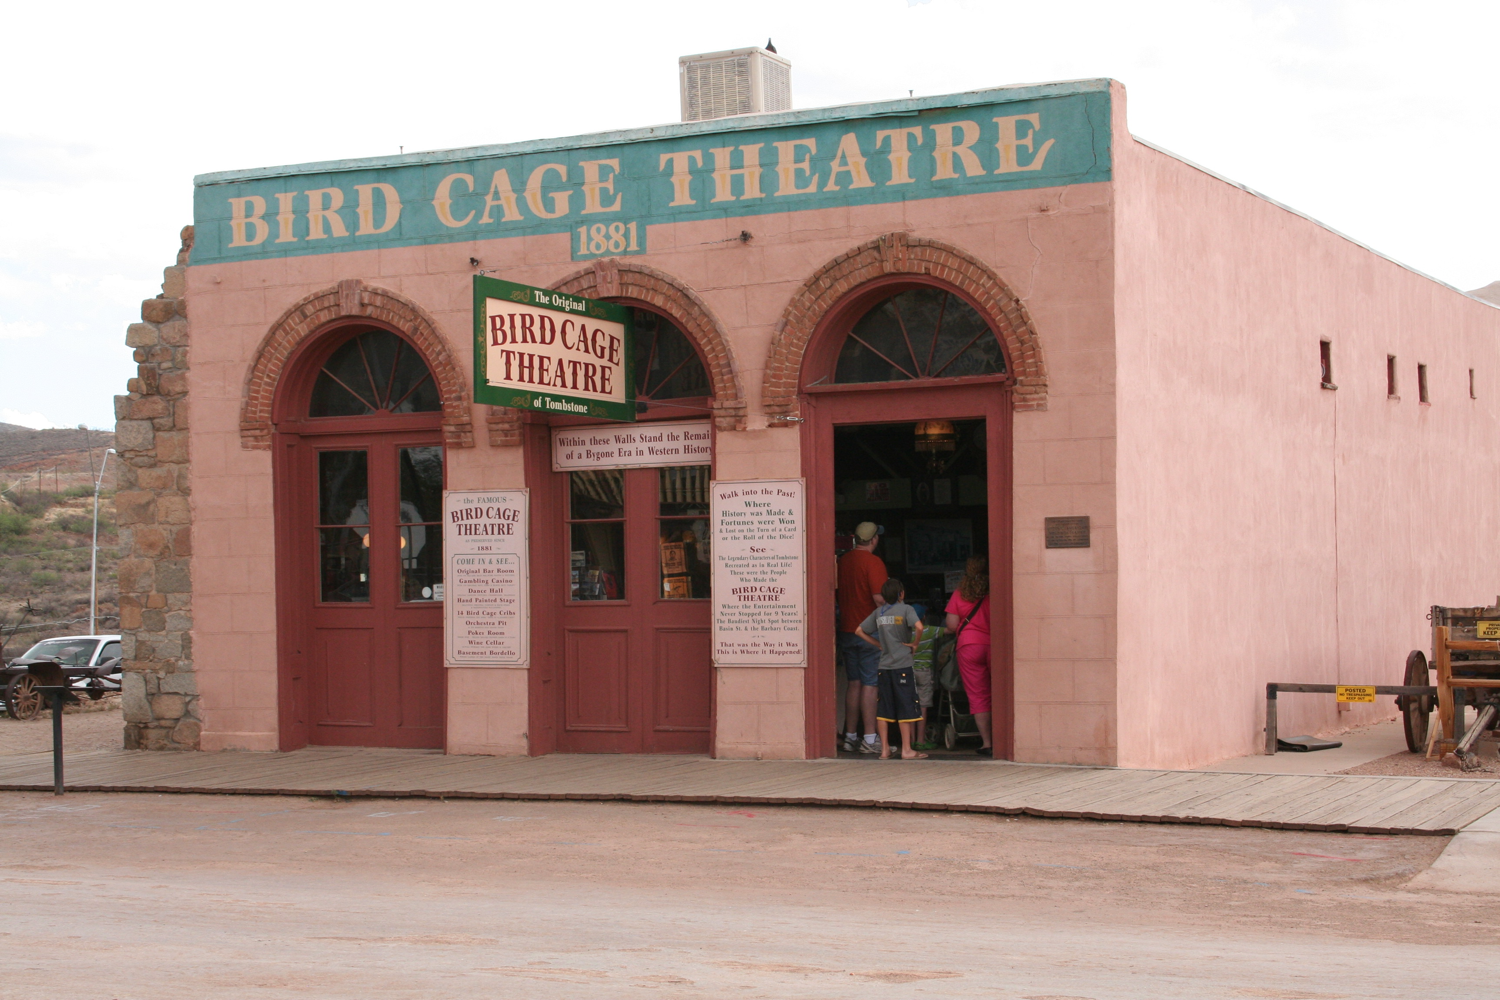 Historic Birdcage Theater in Tombstone, Arizona